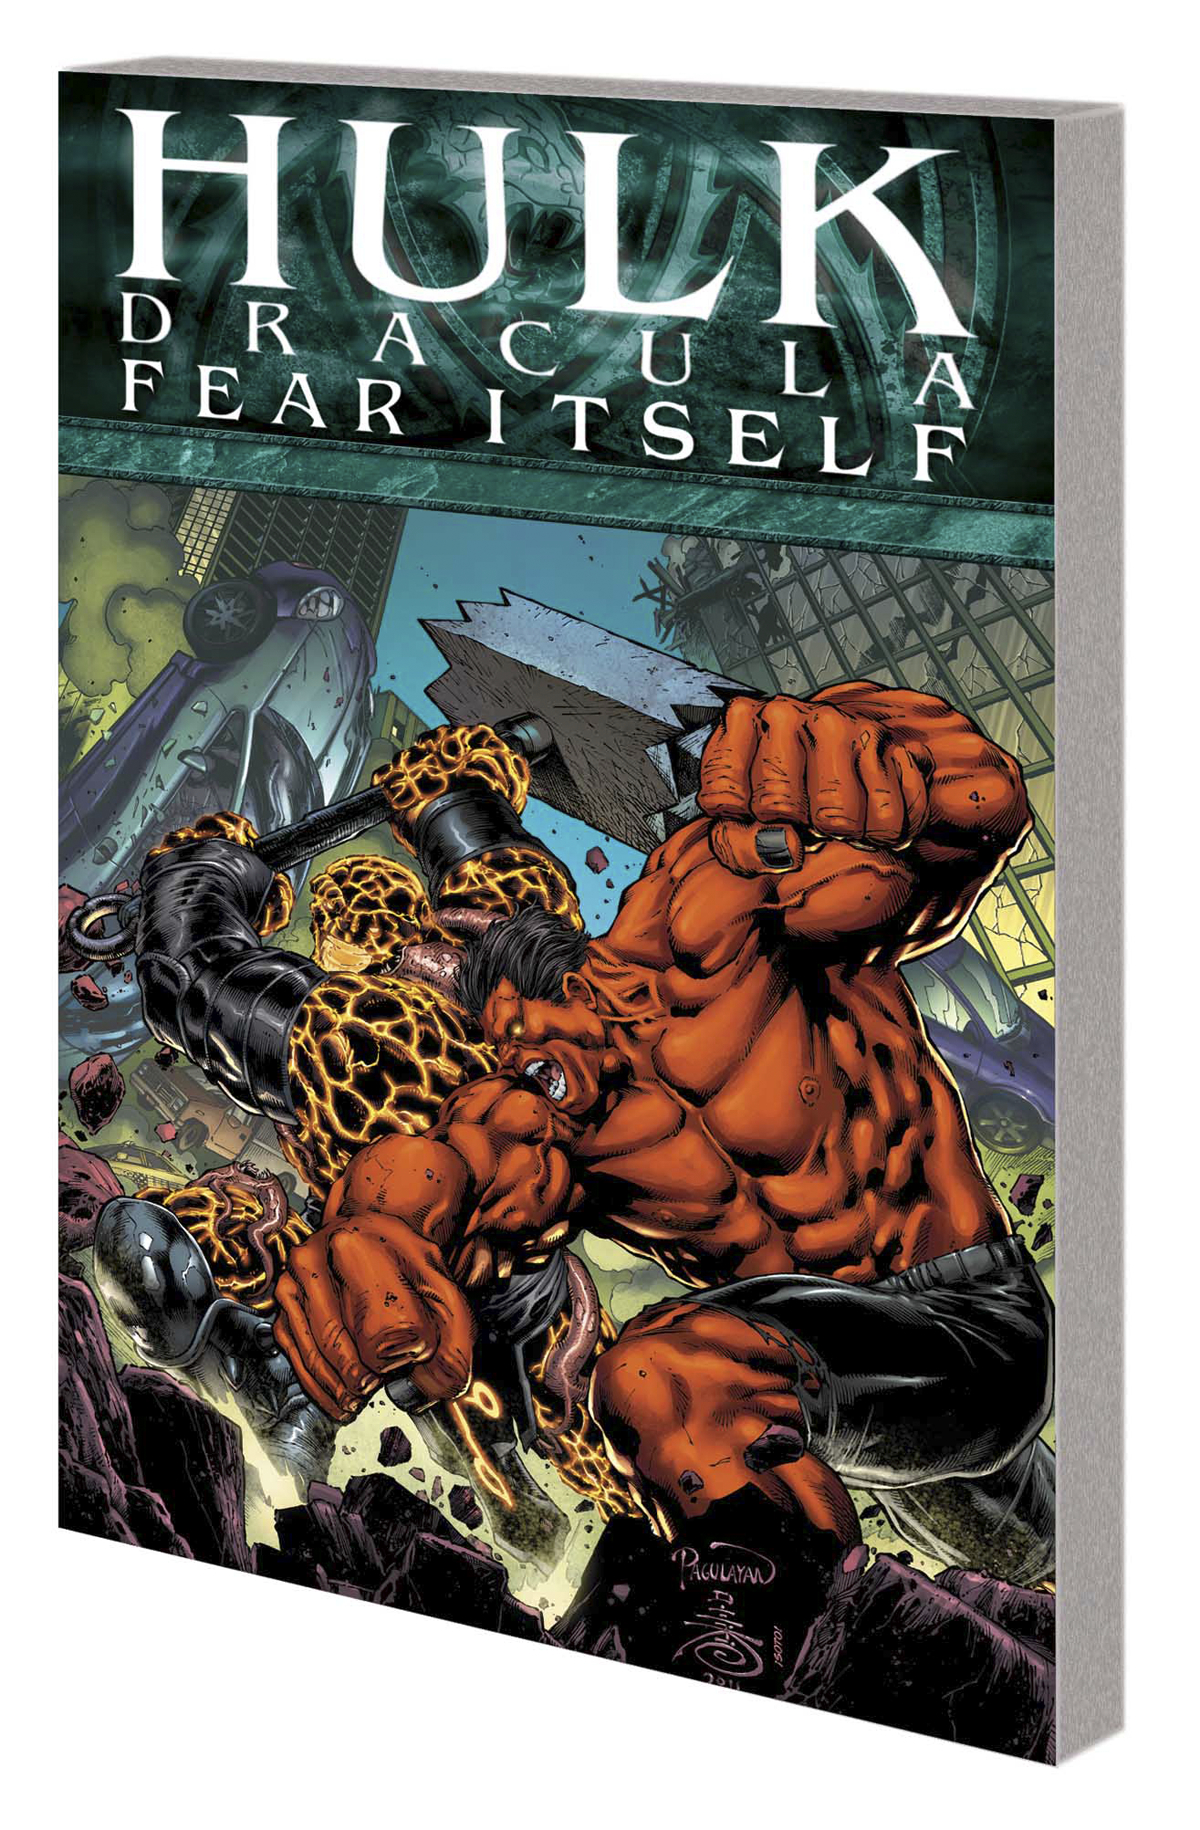 FEAR ITSELF TP HULK DRACULA